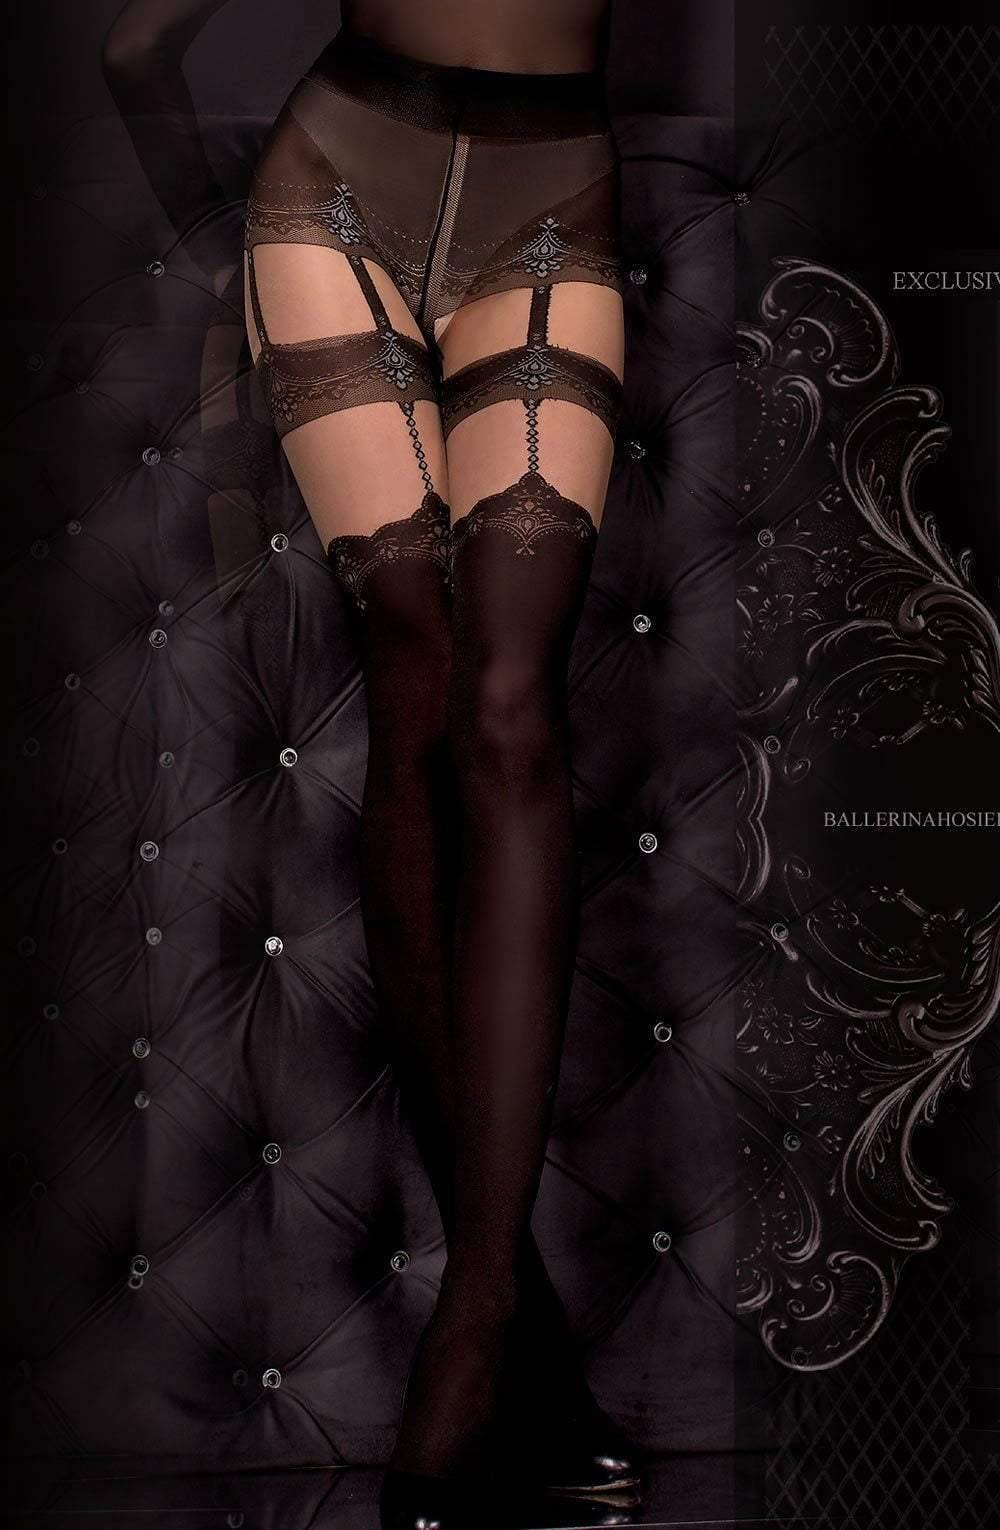 Ballerina 300 Tights Nero (Black)Skin